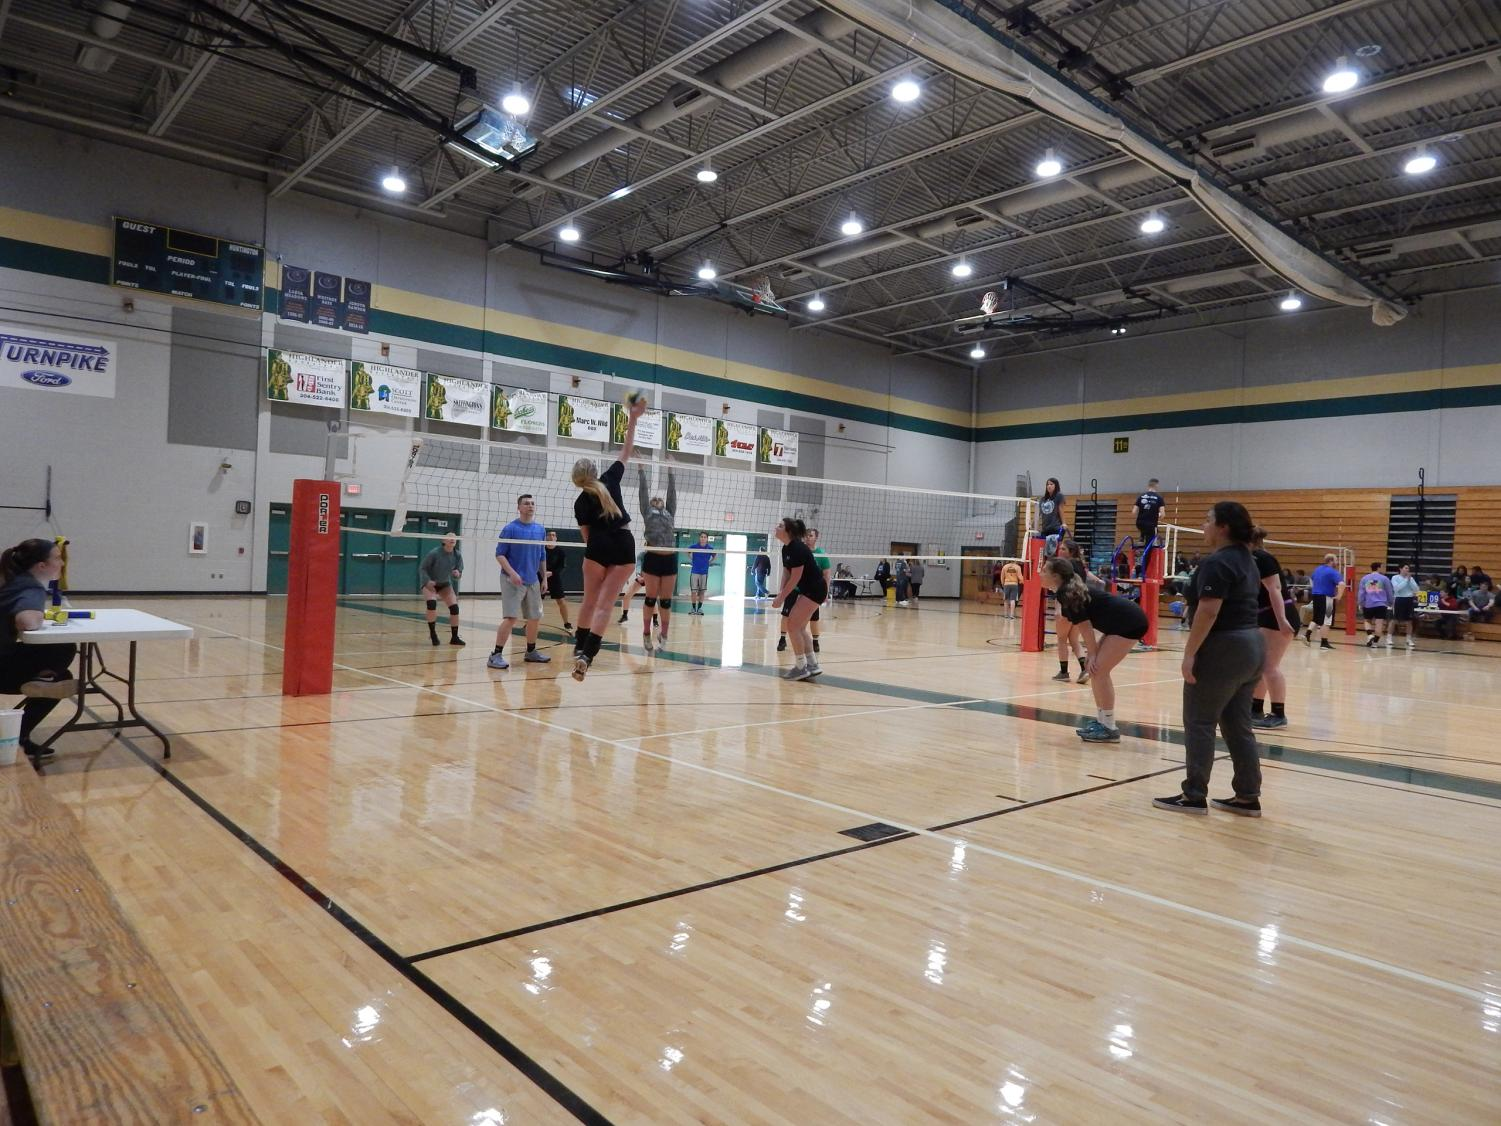 Alpha Sigma Phi and Delta Zeta's sixth annual Spike for a Cause volleyball tournament will take place March 10 at Marshall University's Recreation Center to raise money for Starkey Hearing and Home for Our Troops.